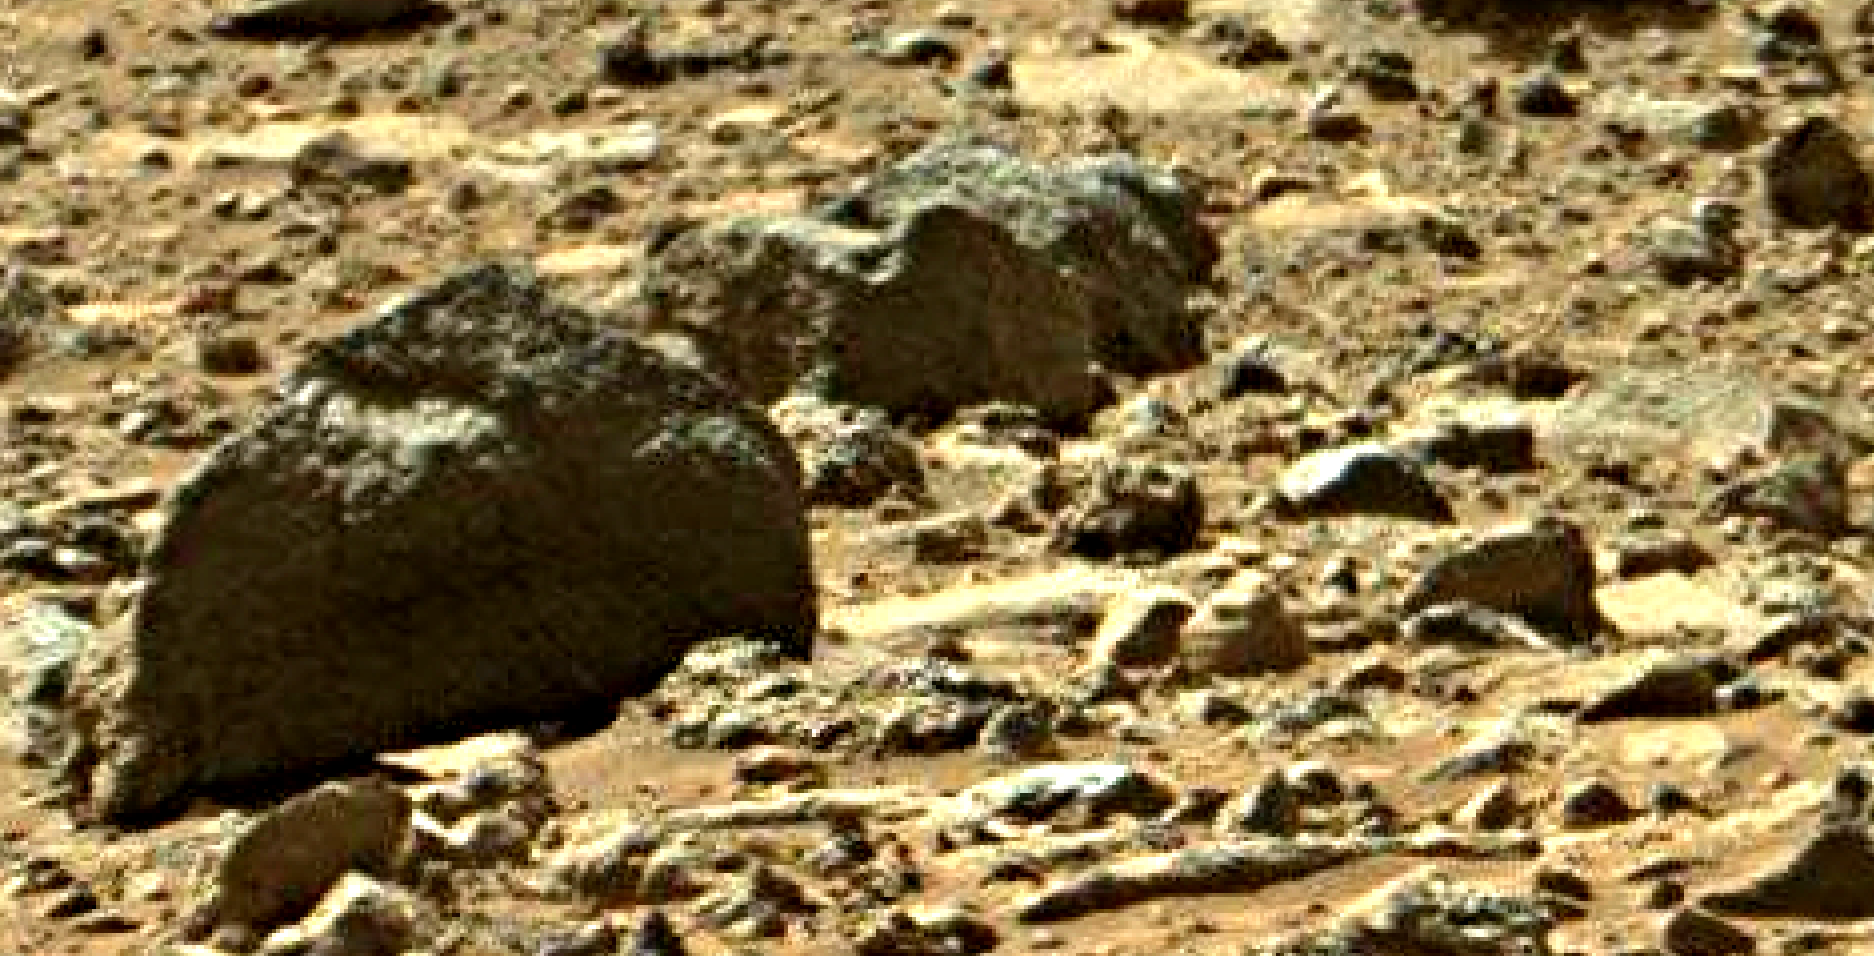 mars sol 1405 anomaly artifacts 5b was life on mars